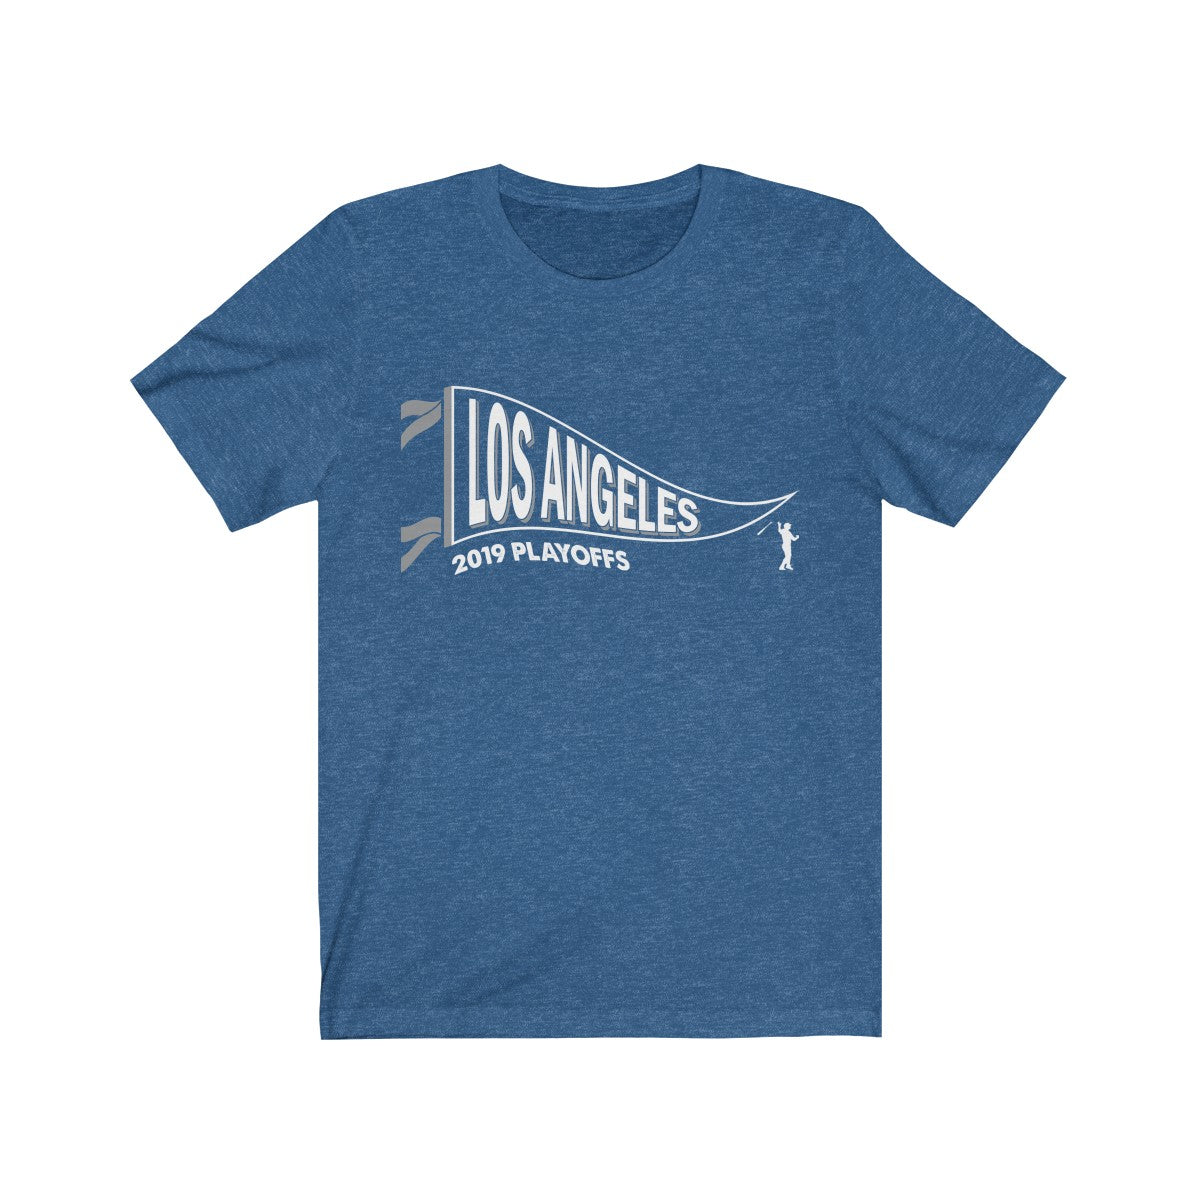 2019 Playoff Pennant Tee - Los Angeles